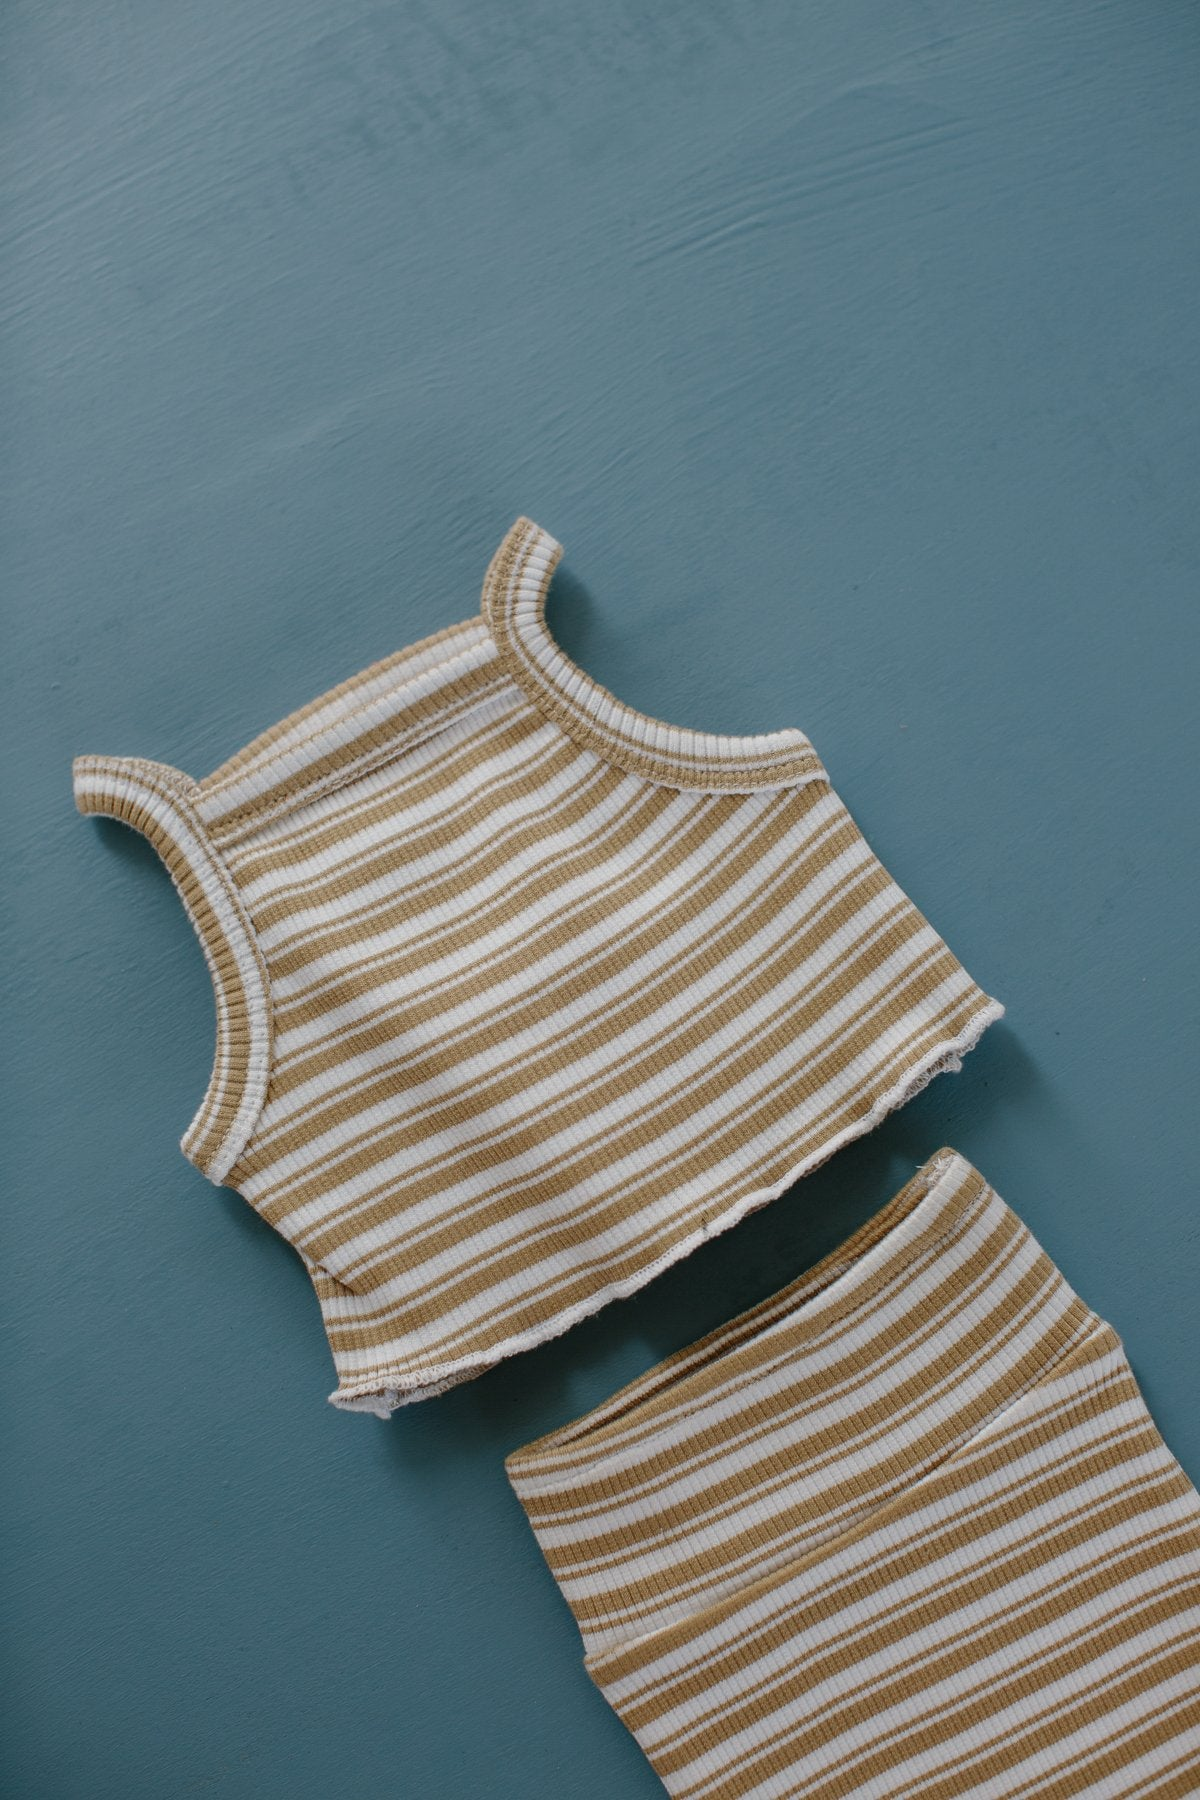 Millk Australia Baby & Kid's Weekly Ensemble in Tan Stripe | BIEN BIEN